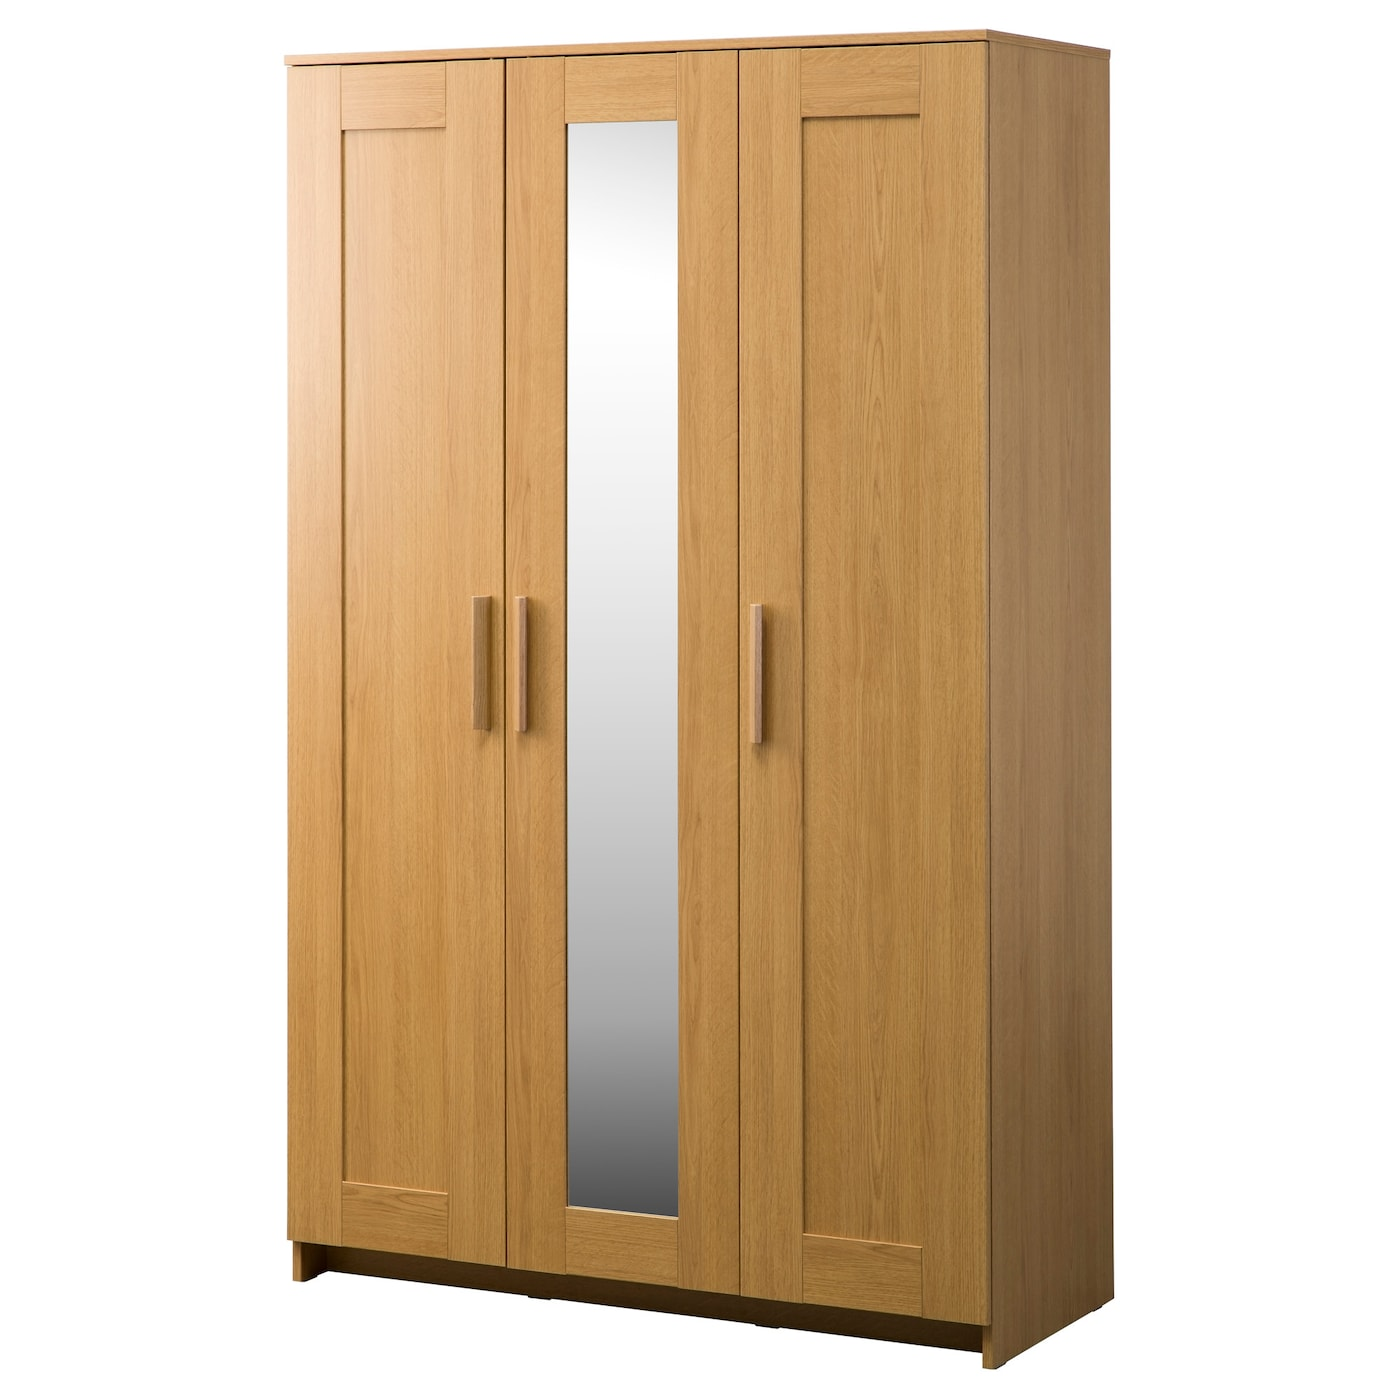 wardrobe images. ikea brimnes wardrobe with 3 doors adjustable hinges ensure that the hang straight images ikea